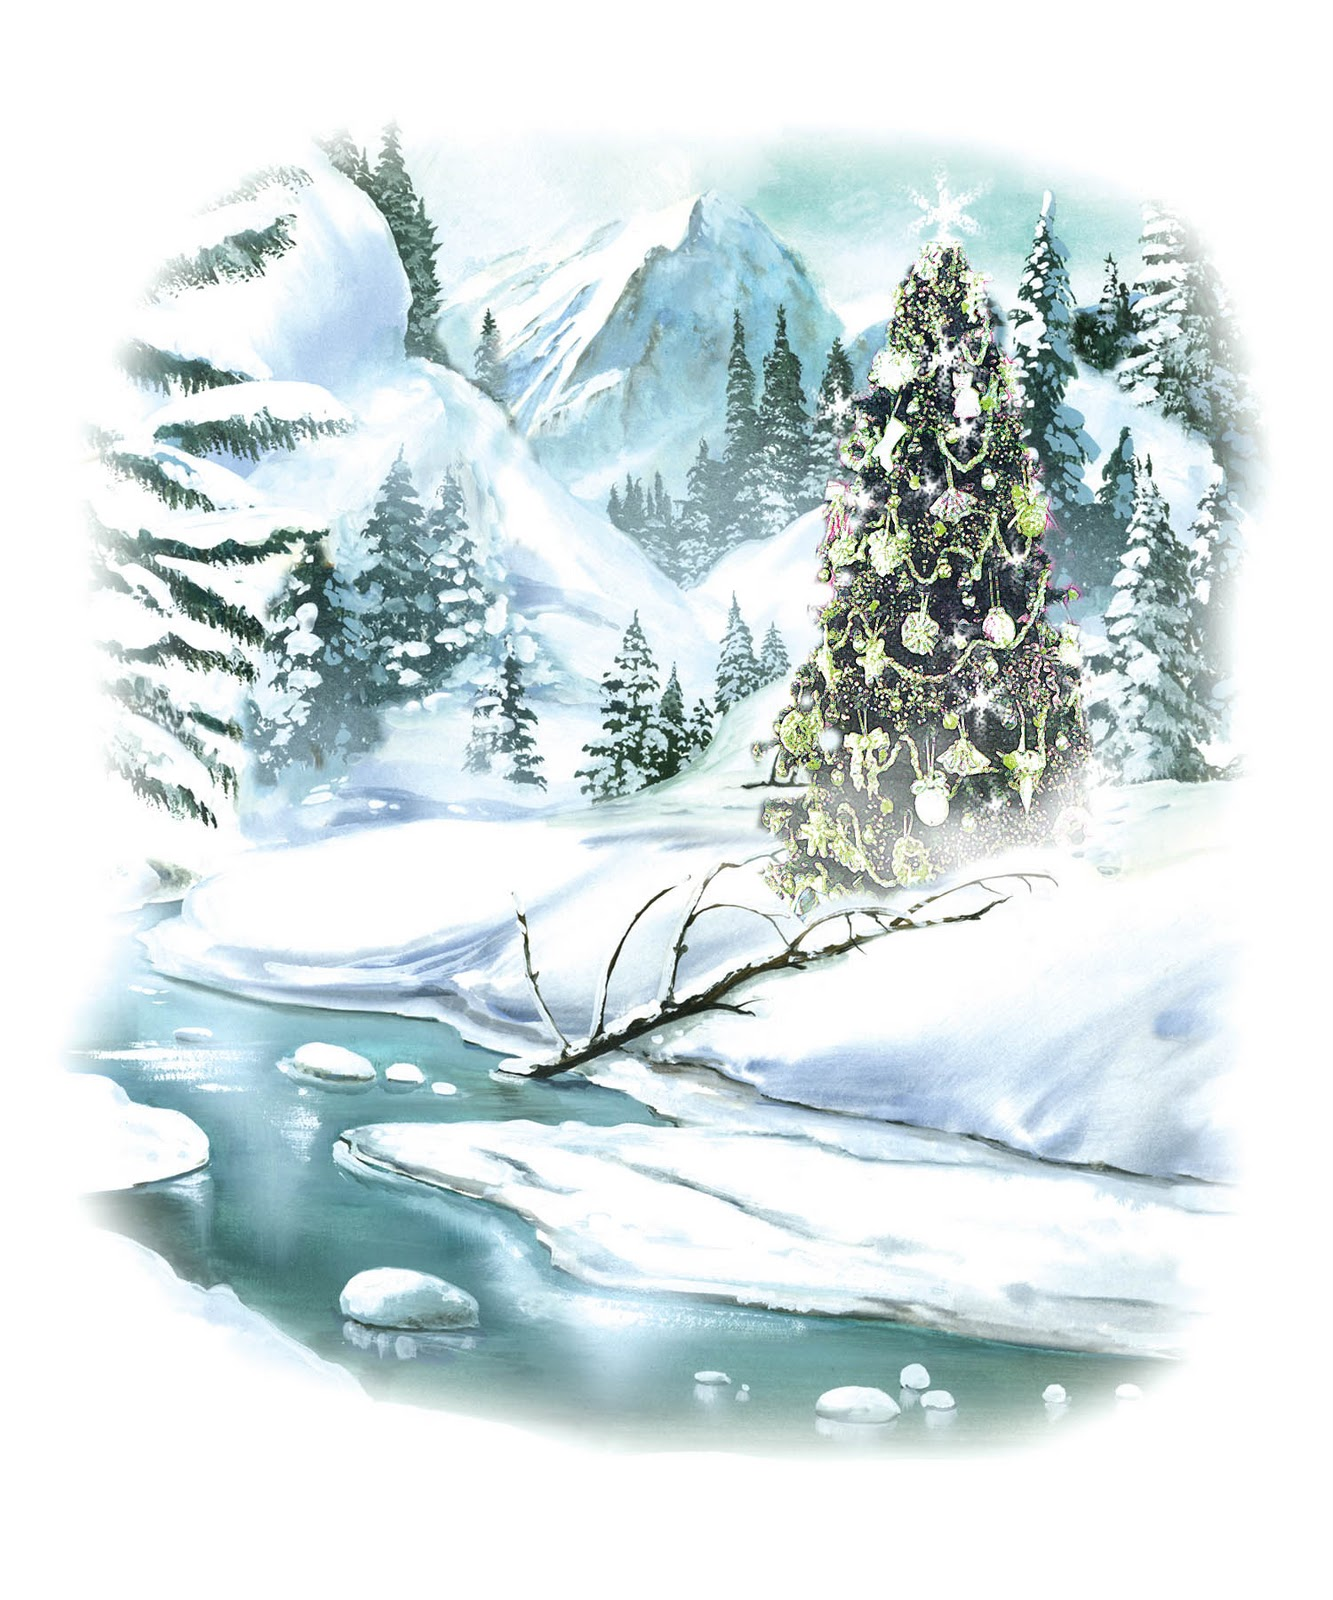 Christmas Winter Scenes Clip Art.